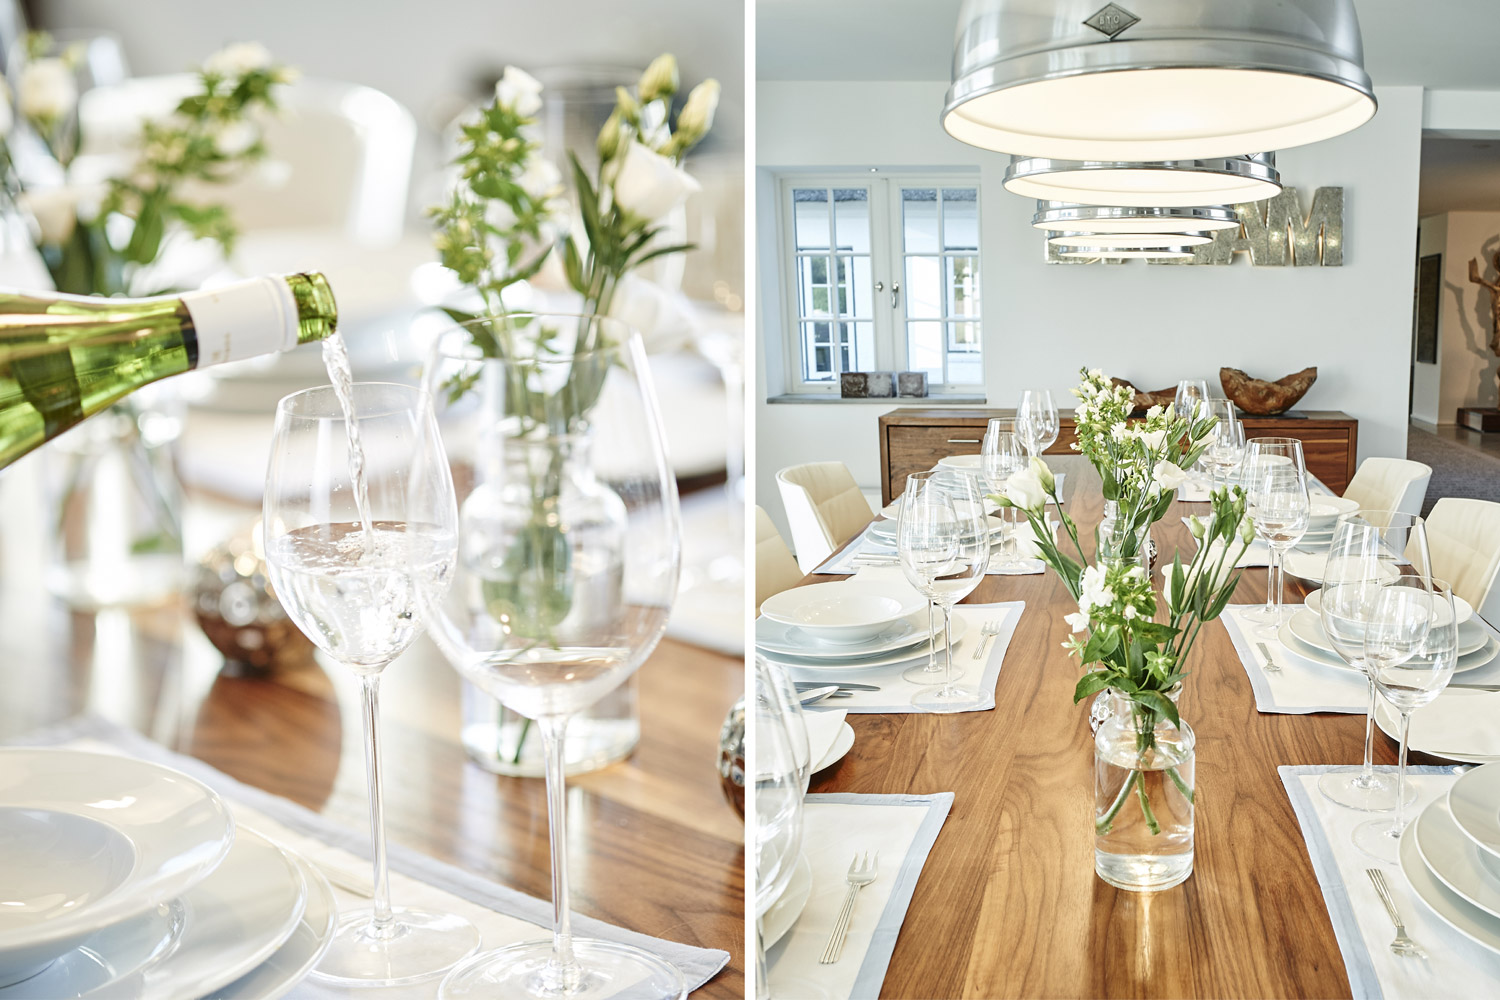 ASTRID M. OBERT PHOTOGRAPHY PRESENTS - SYLT - Uli's House Interior